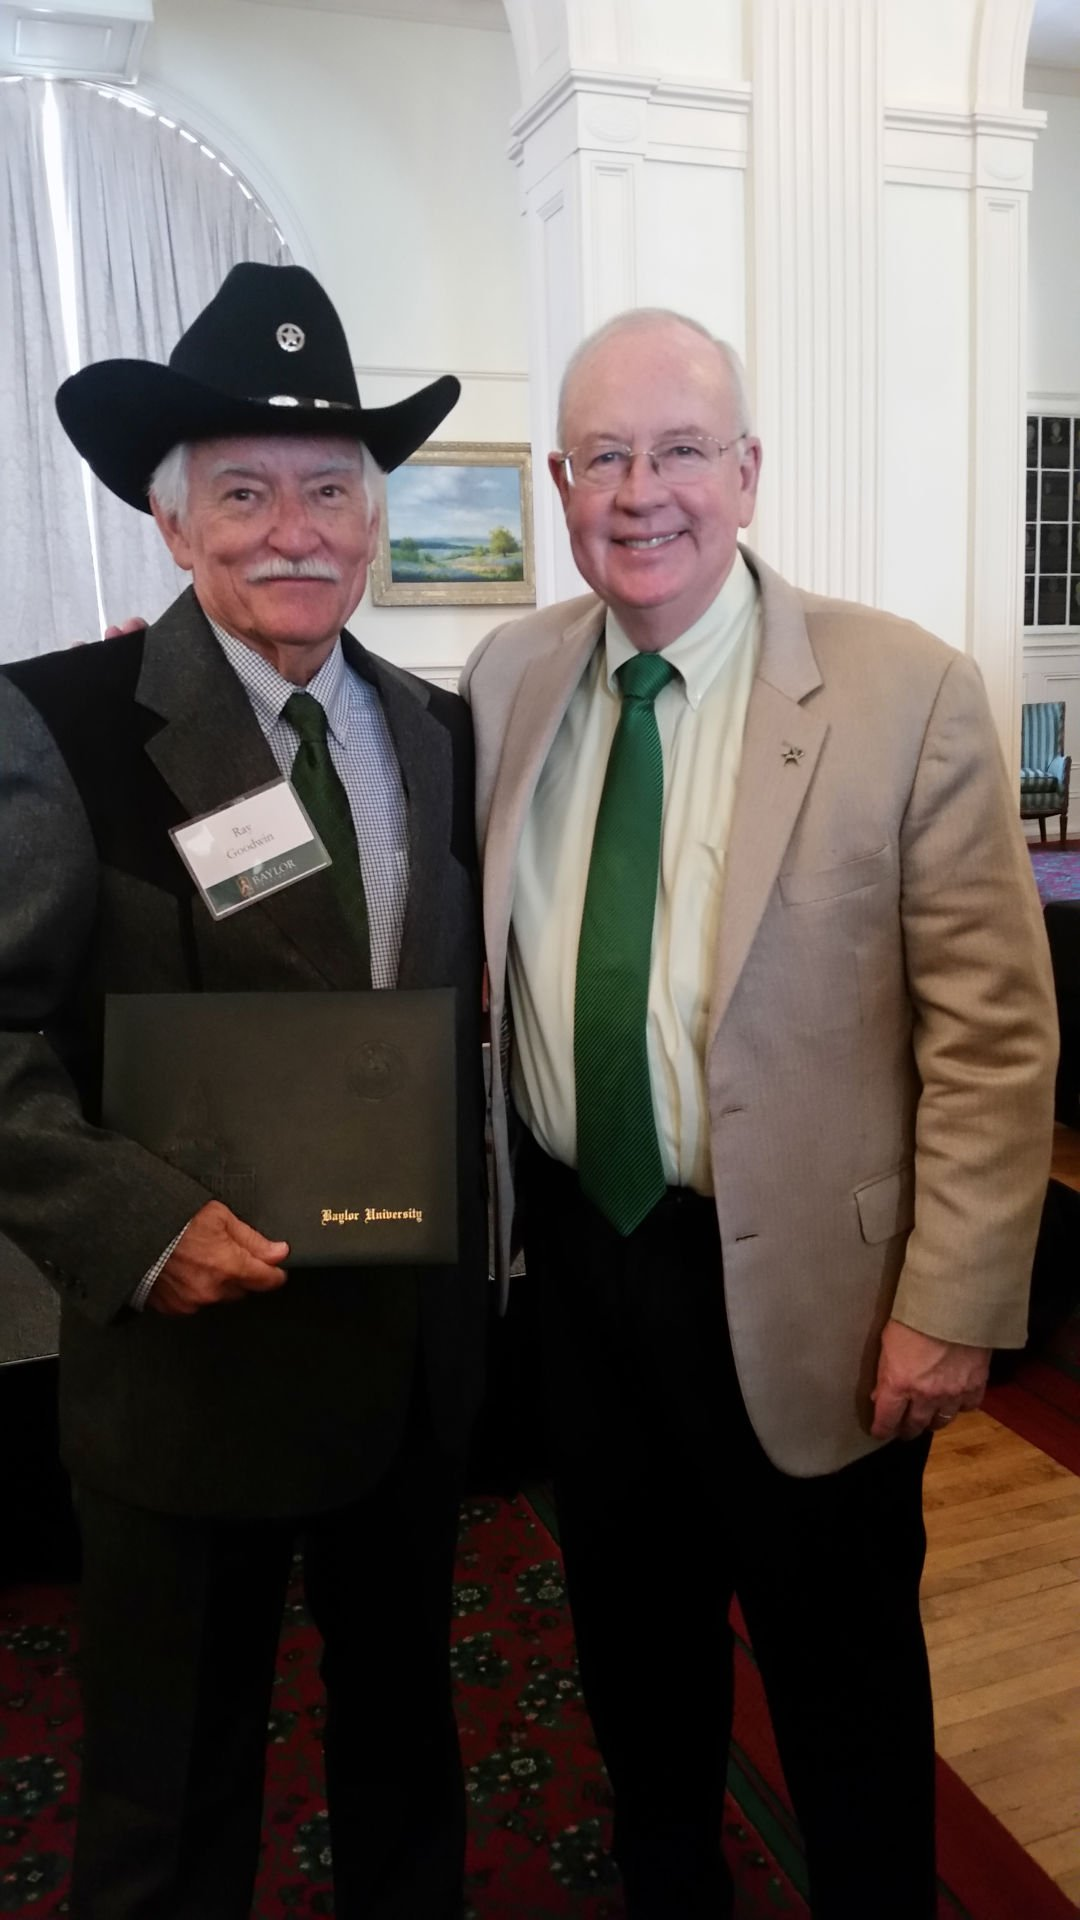 Victoria resident awarded Baylor degree replica